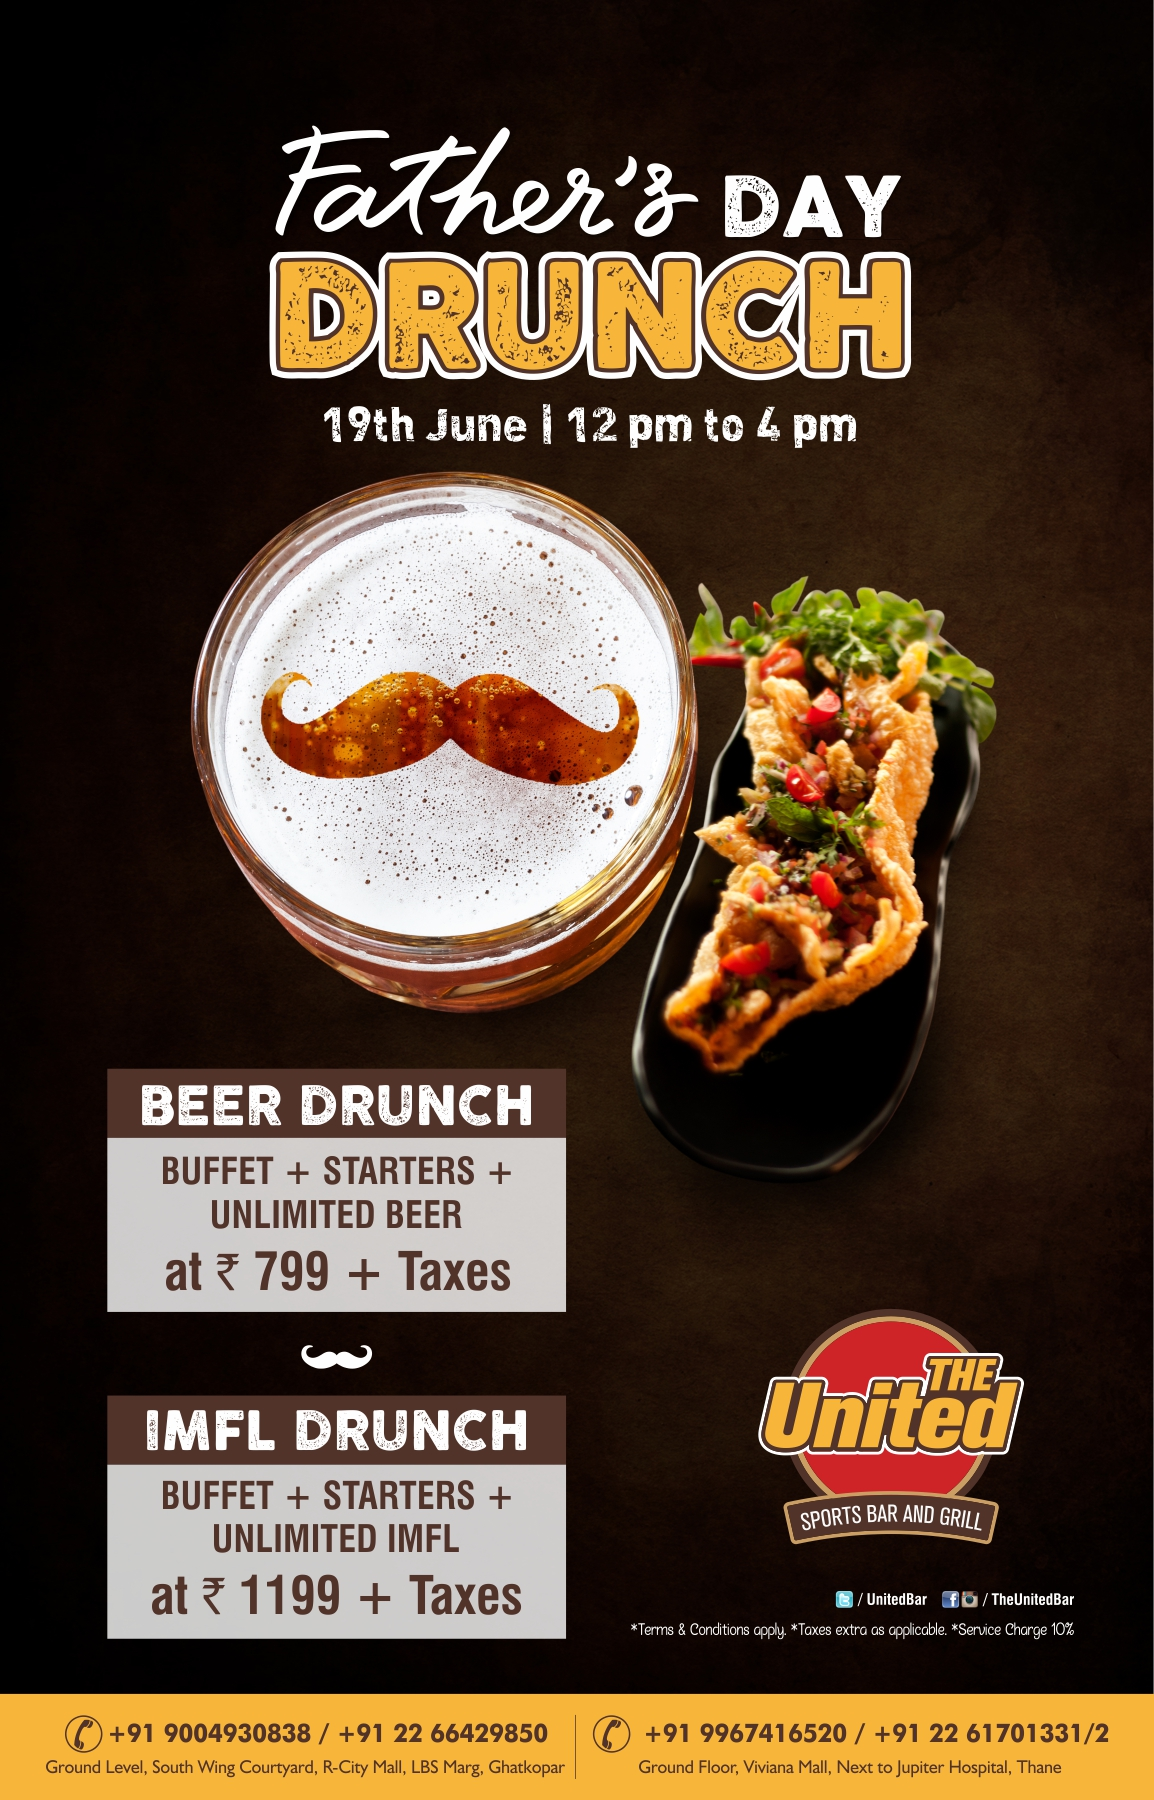 Get drunched this Father's Day at United